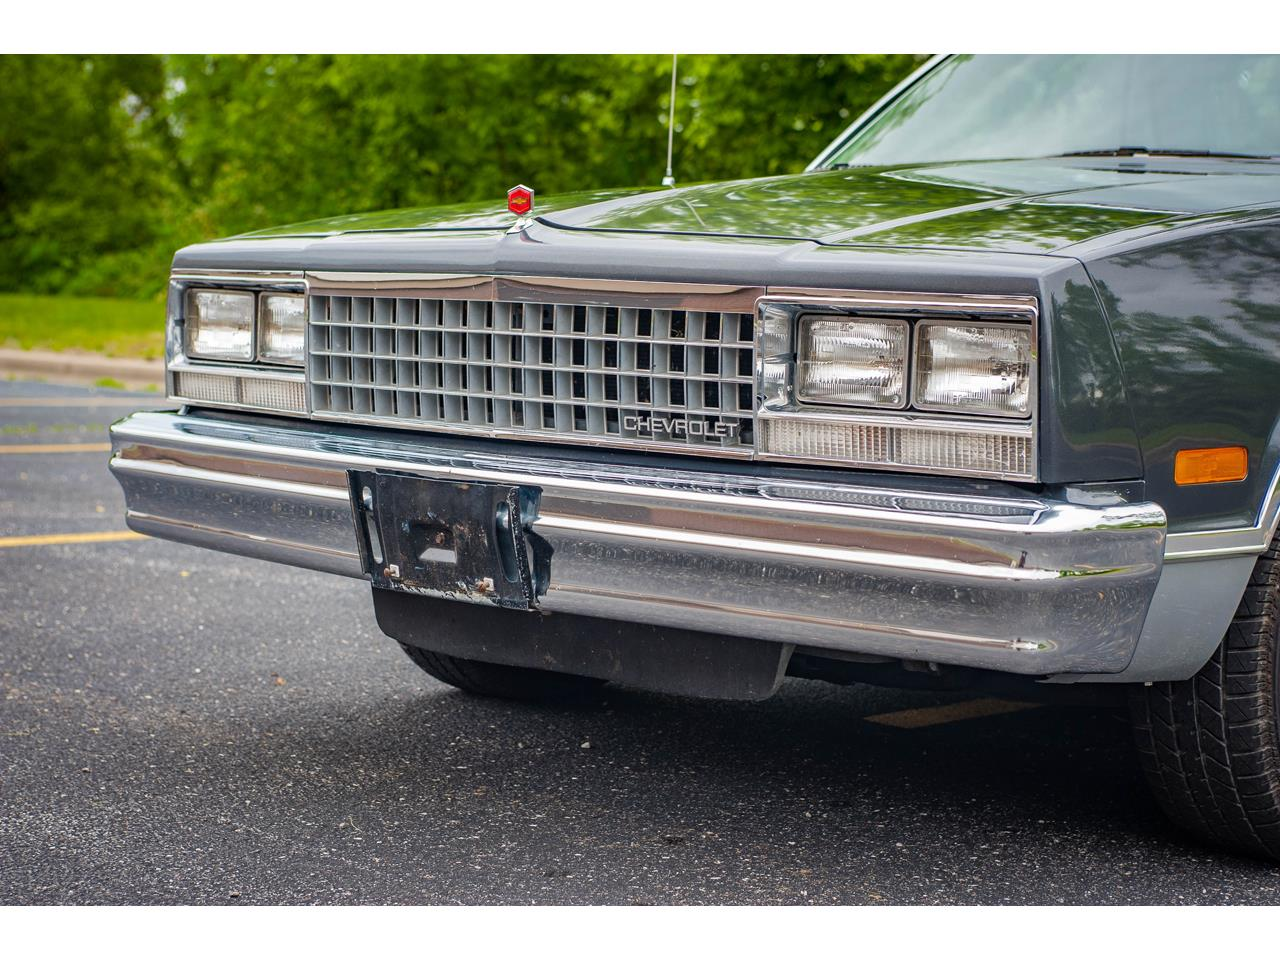 Large Picture of '82 Chevrolet El Camino located in Illinois - $13,000.00 Offered by Gateway Classic Cars - St. Louis - QB9A